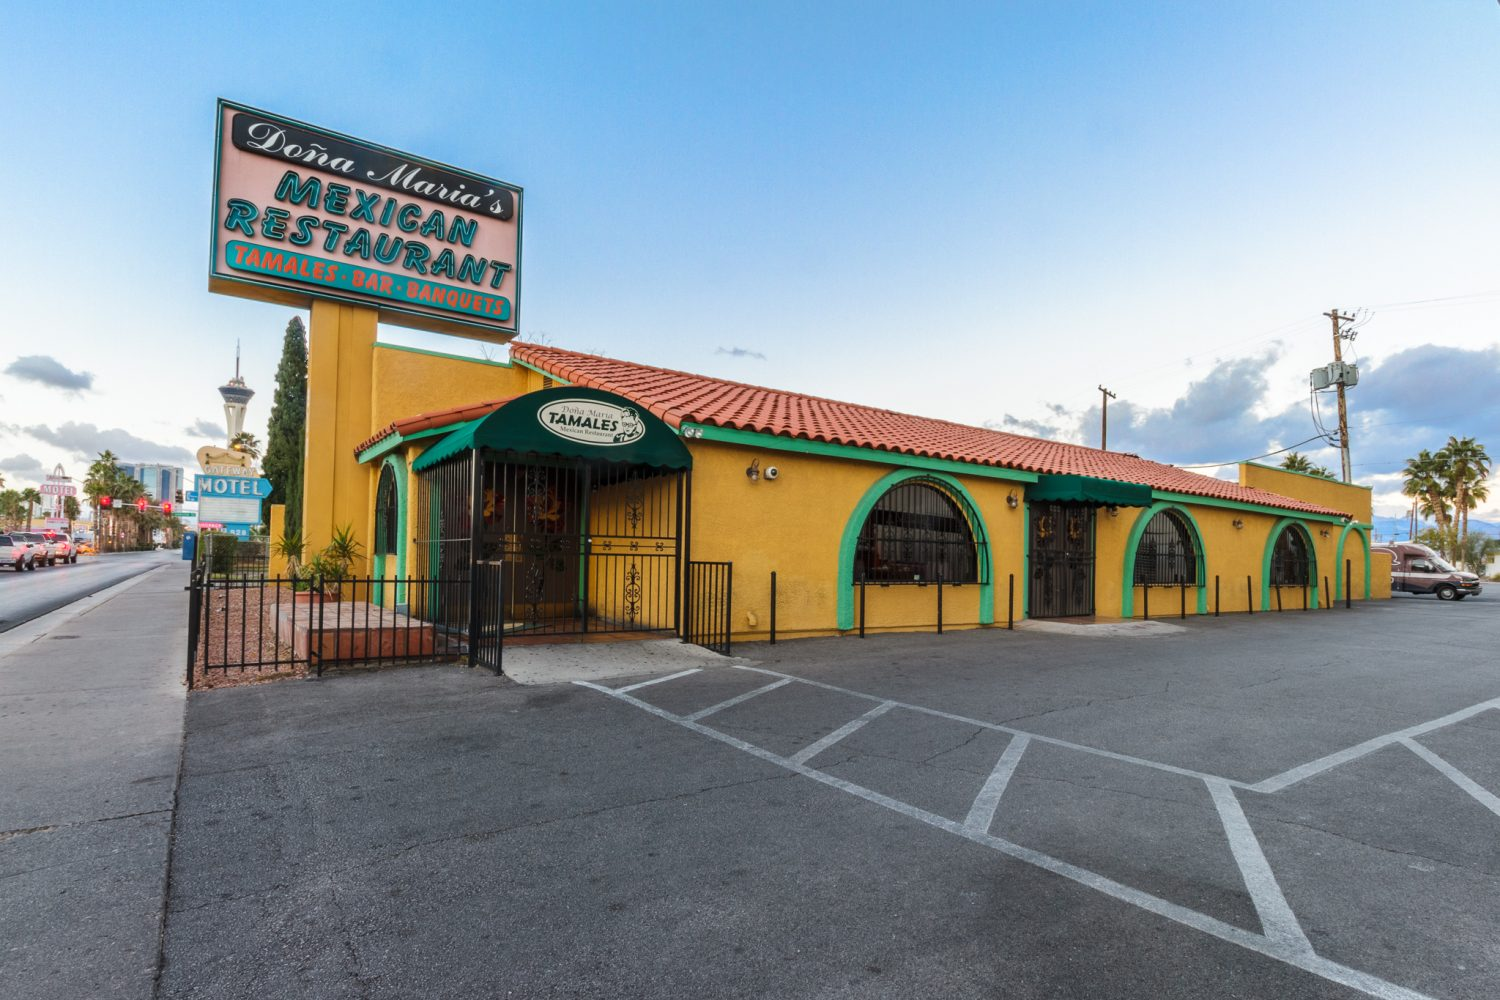 Best Mexican Food In Summerlin Nv